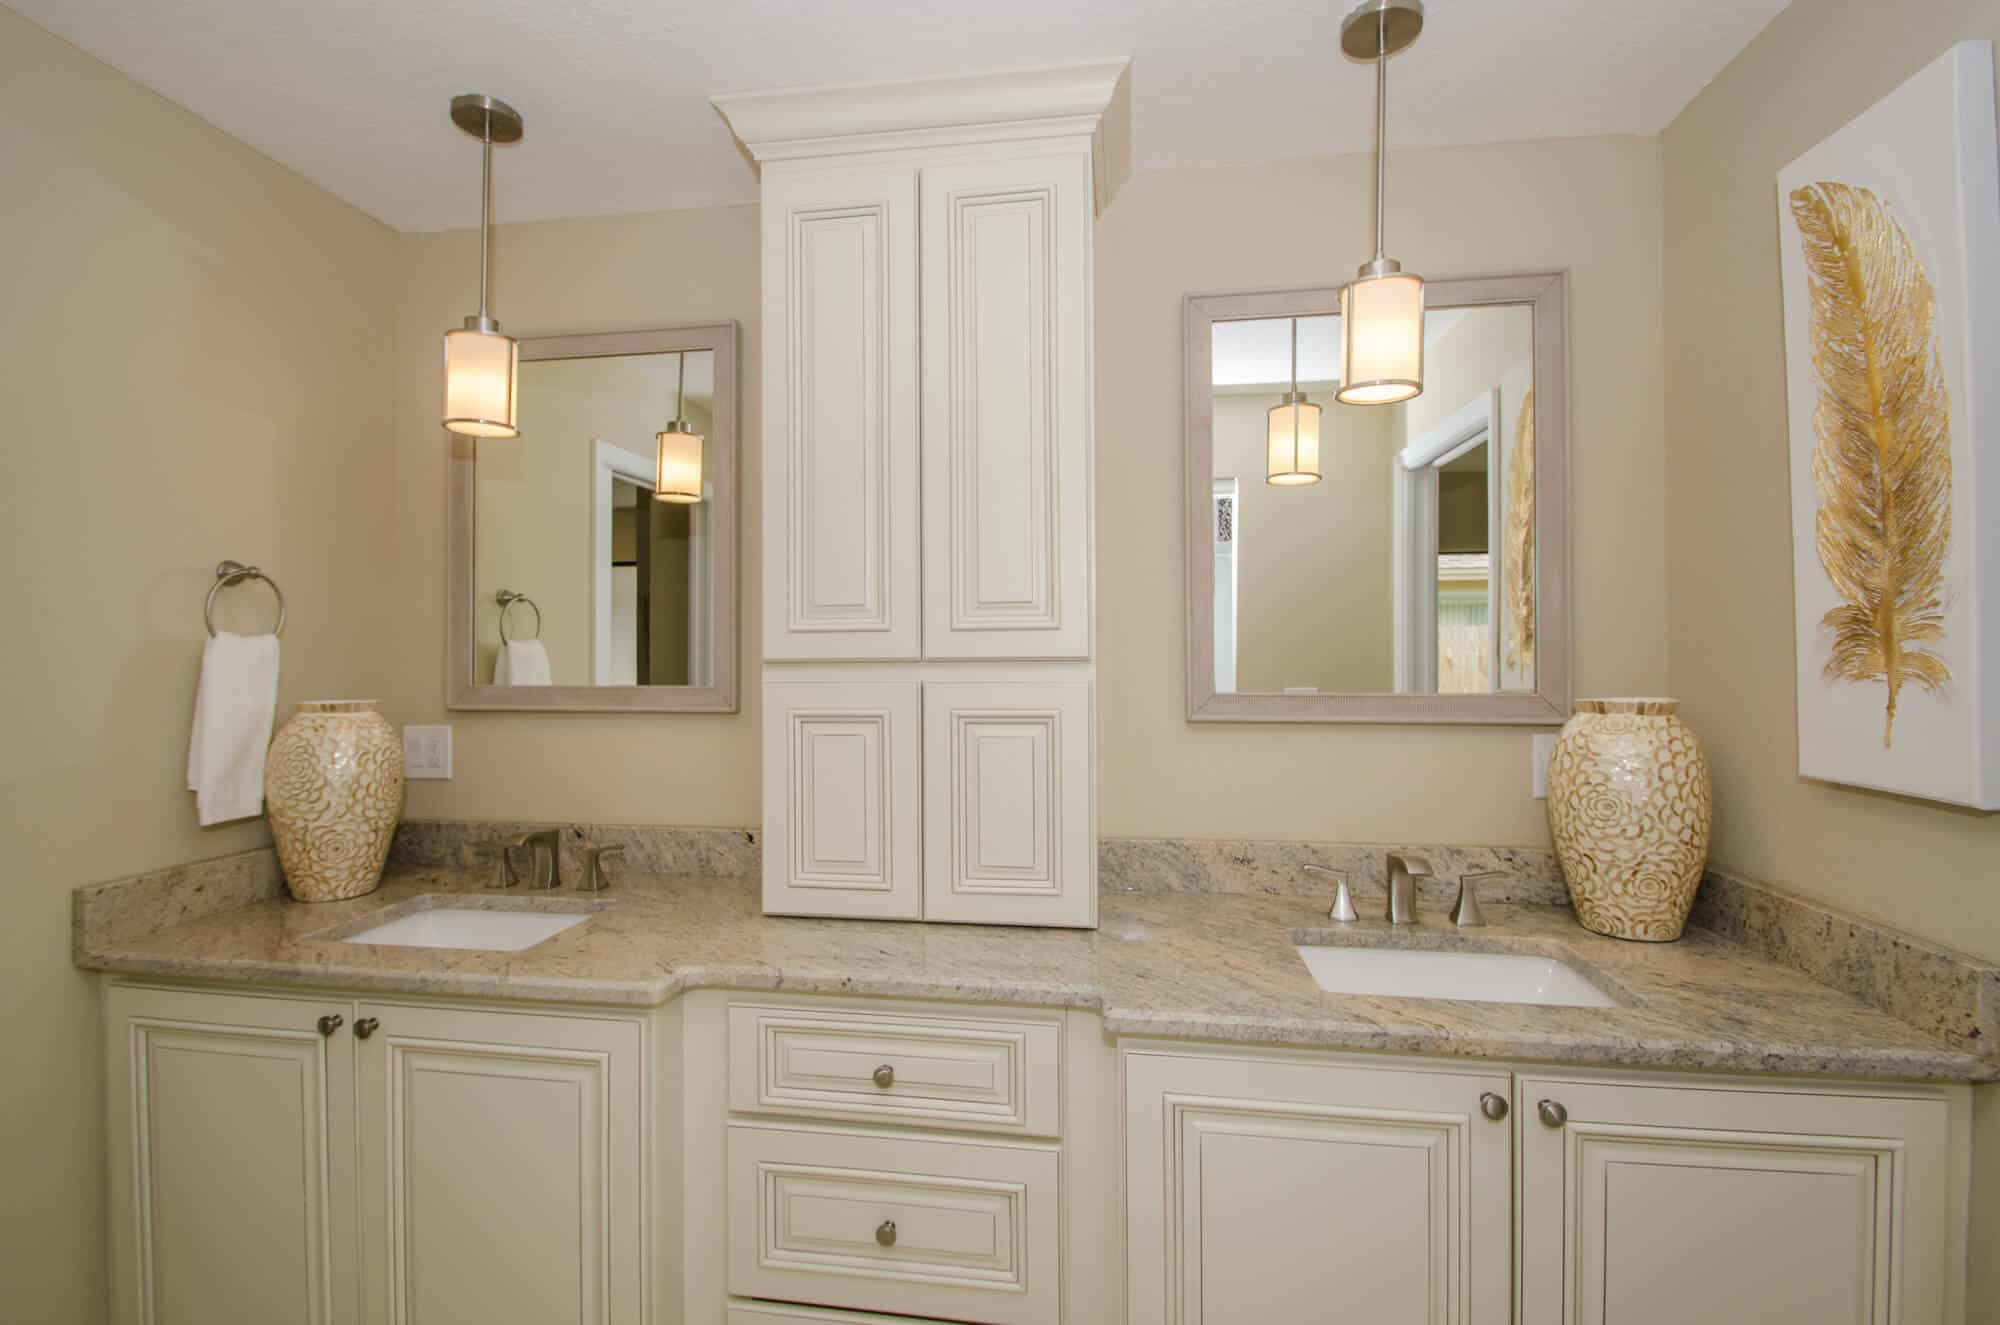 Bath remodel featuring bath cabinetry